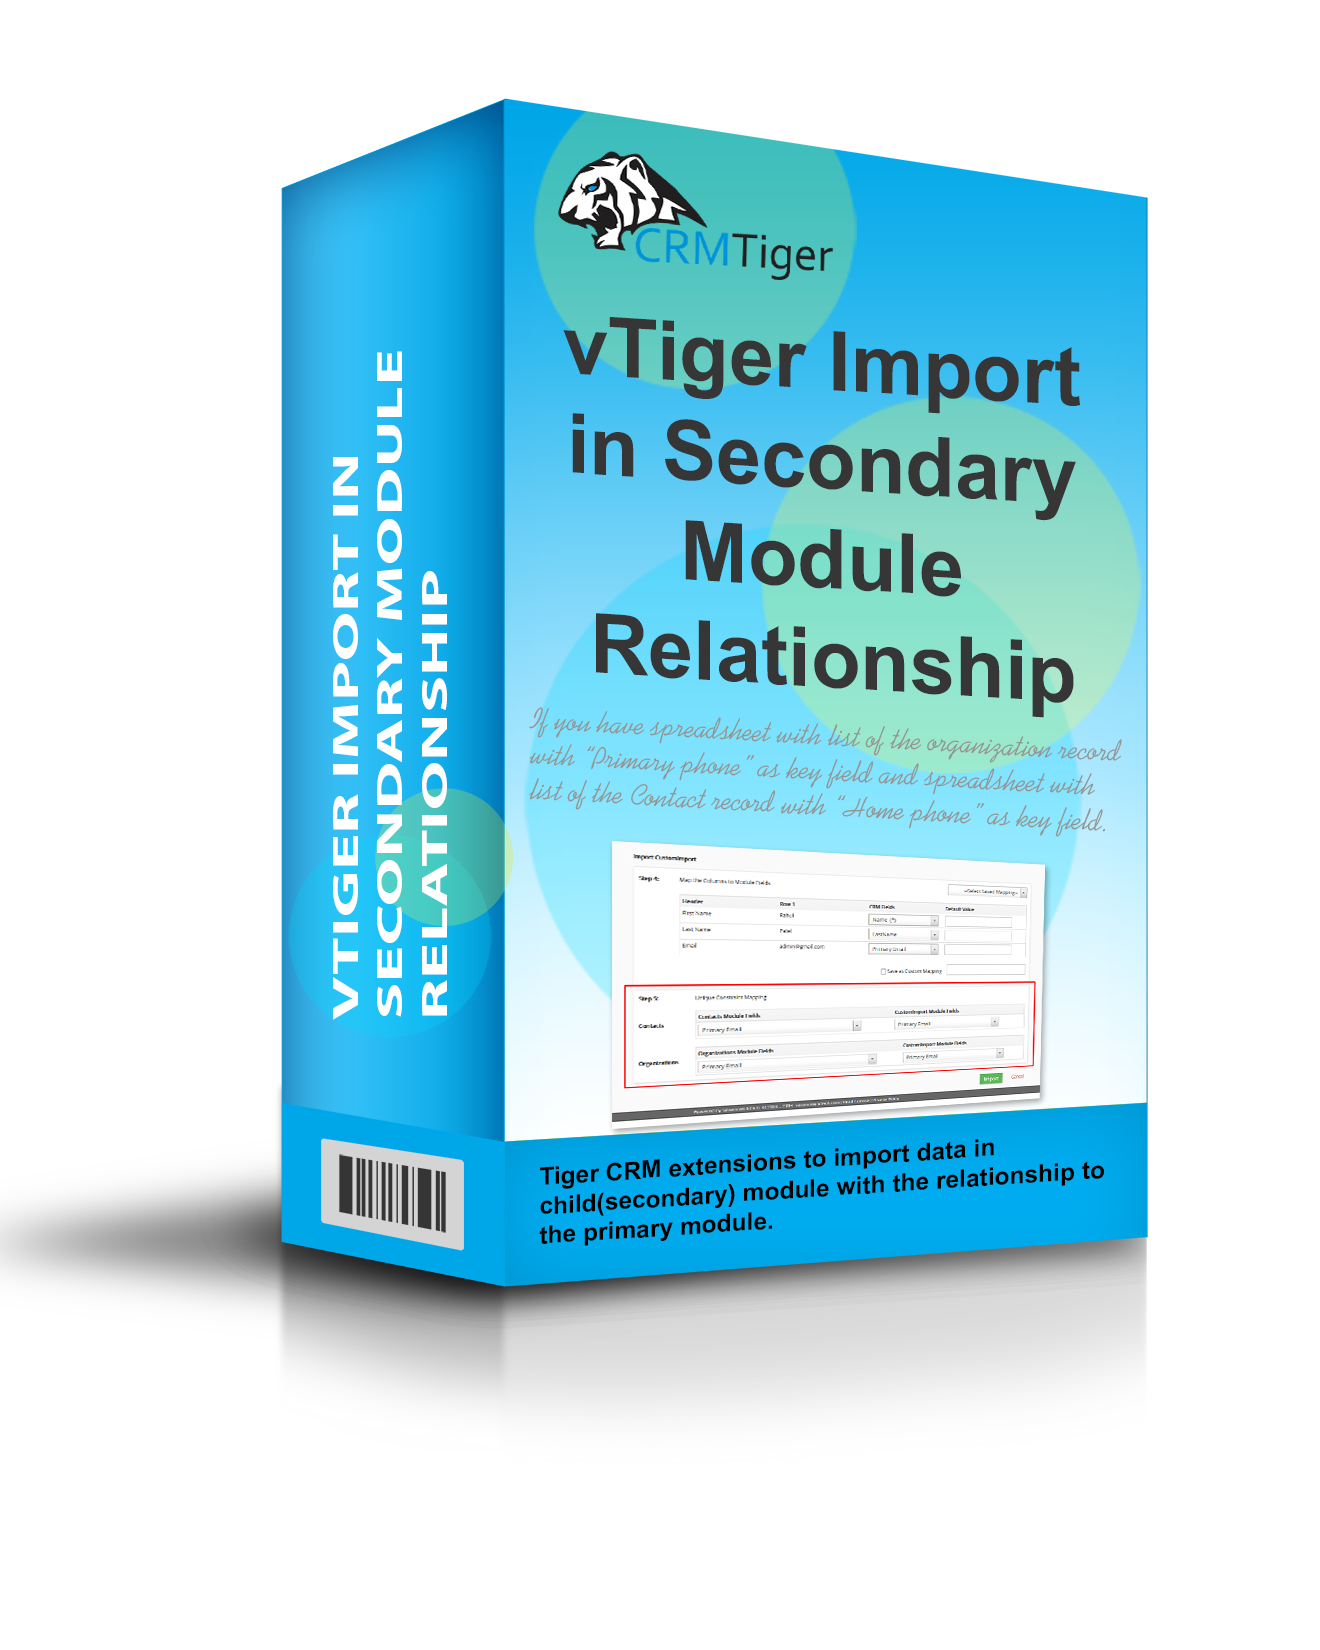 vTiger Import in Secondary Module Relationship